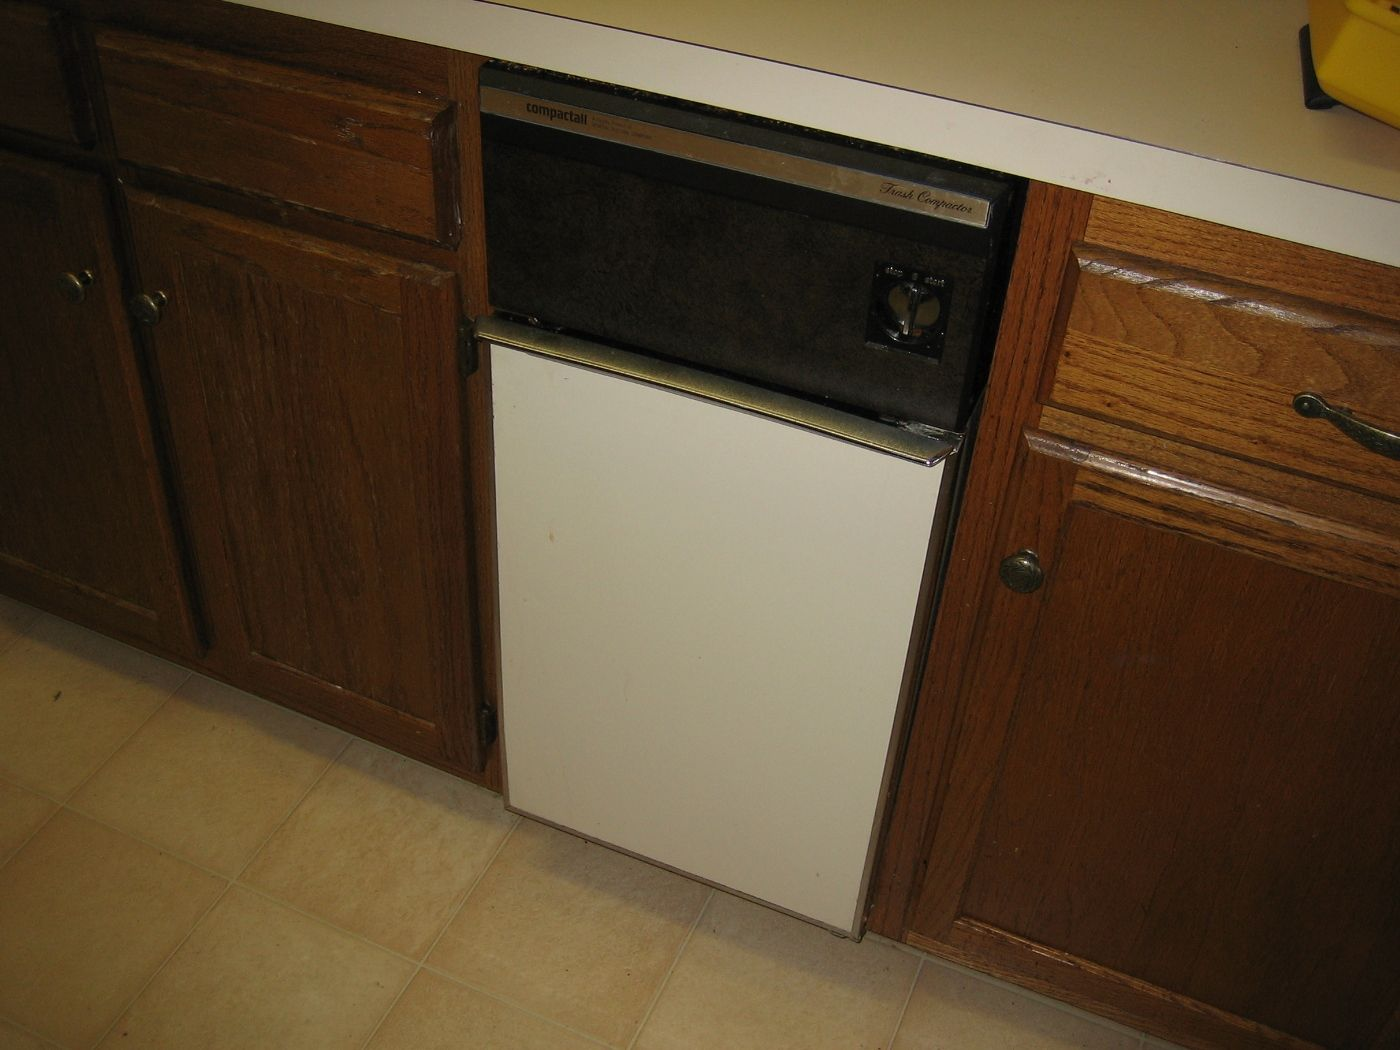 Kitchen Trash Compactor Cleveland Cabinets Compactors My Parents Still Use Theirs It 39s A